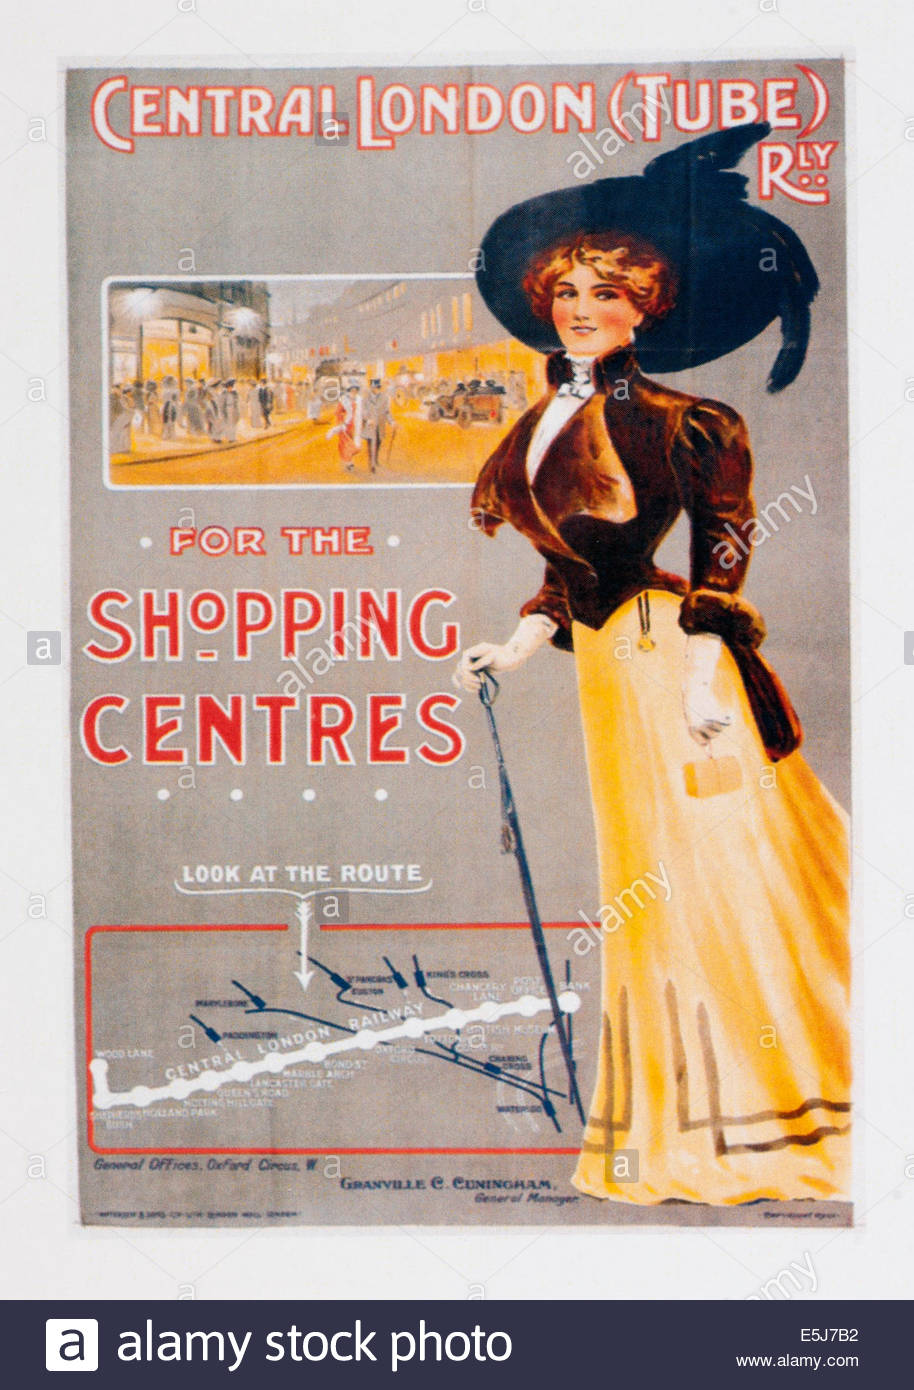 Vintage travel poster advertising Central London Tube Railway. Editorial Only - Stock Image